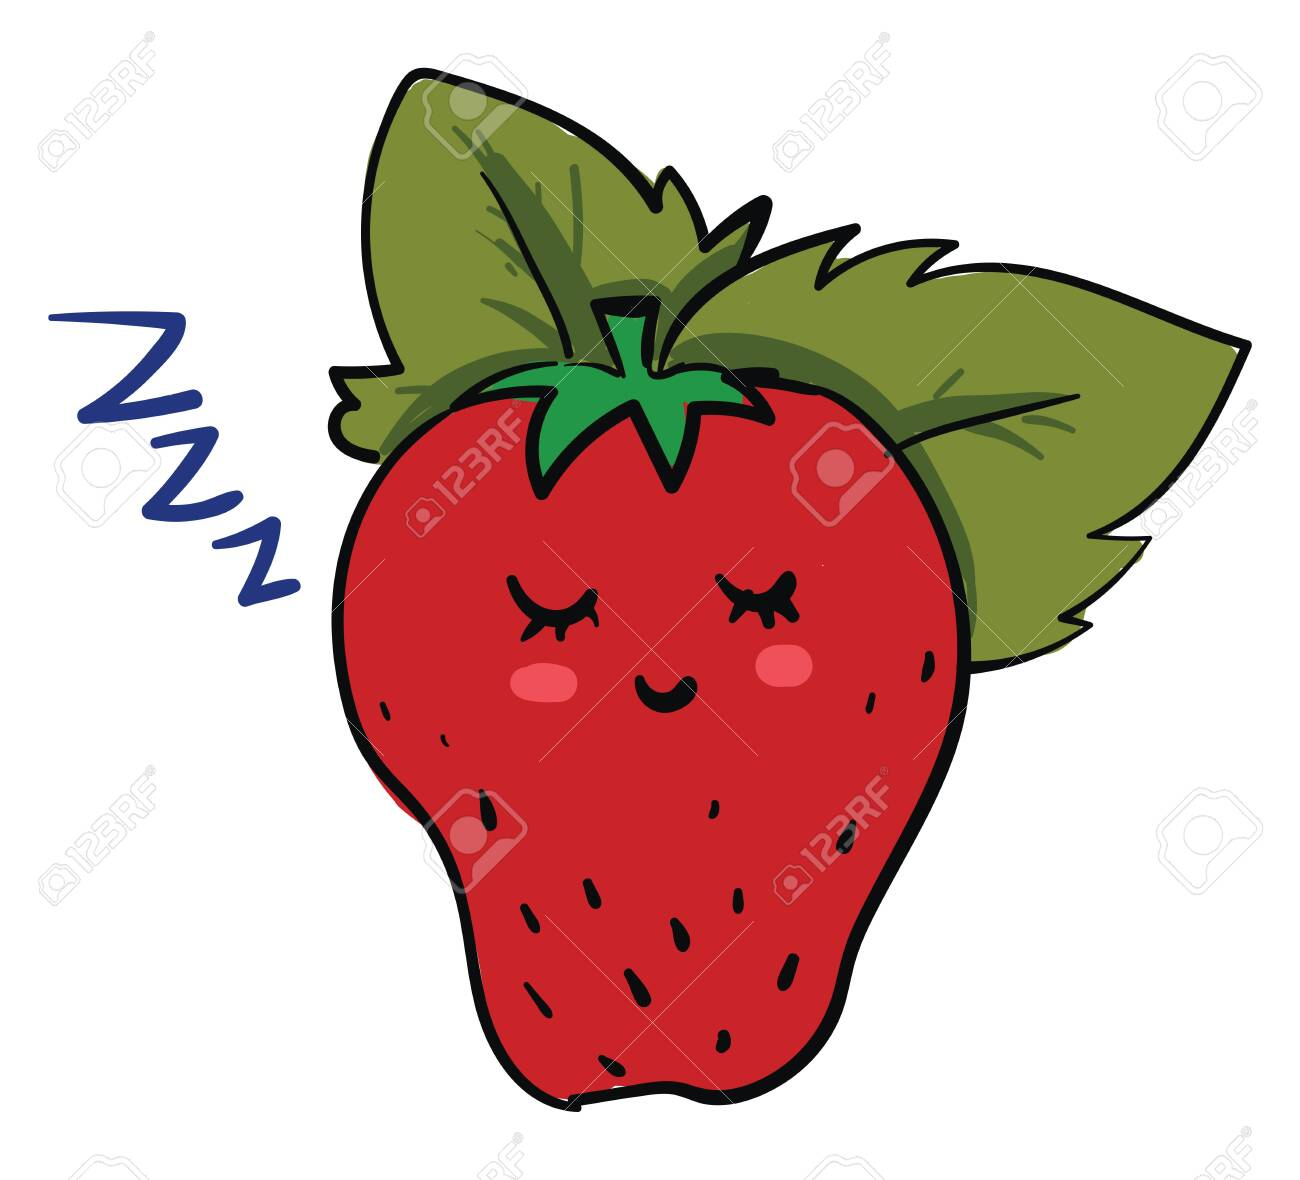 A ripe red strawberry with a green leaf sleeping, vector, color drawing or illustration. - 132772517